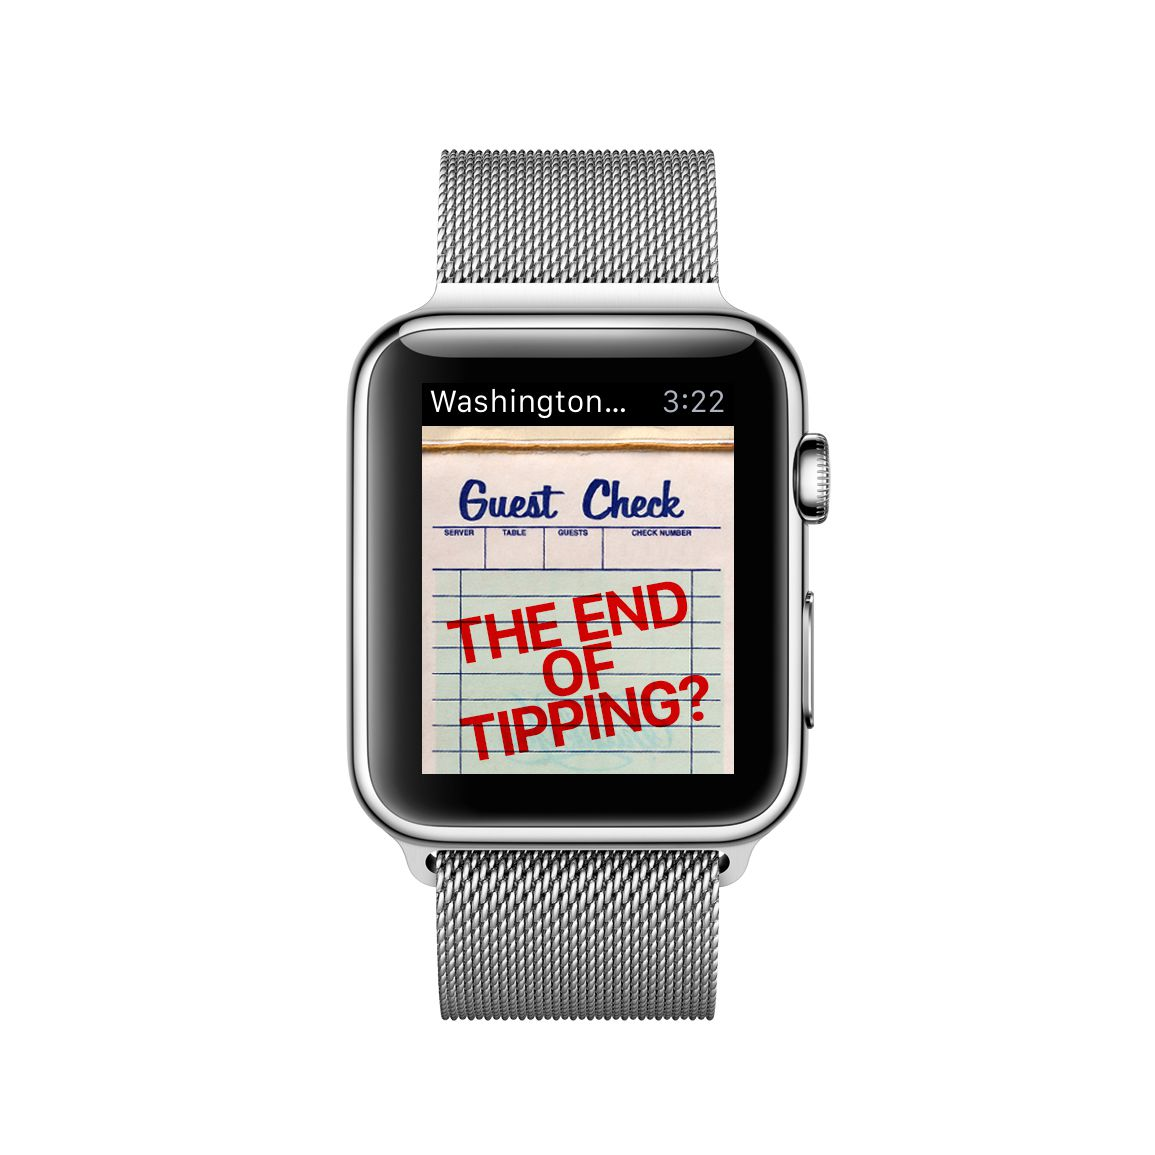 The Washington Post's new Apple Watch app will pick a single story to explore through words, graphics and images.